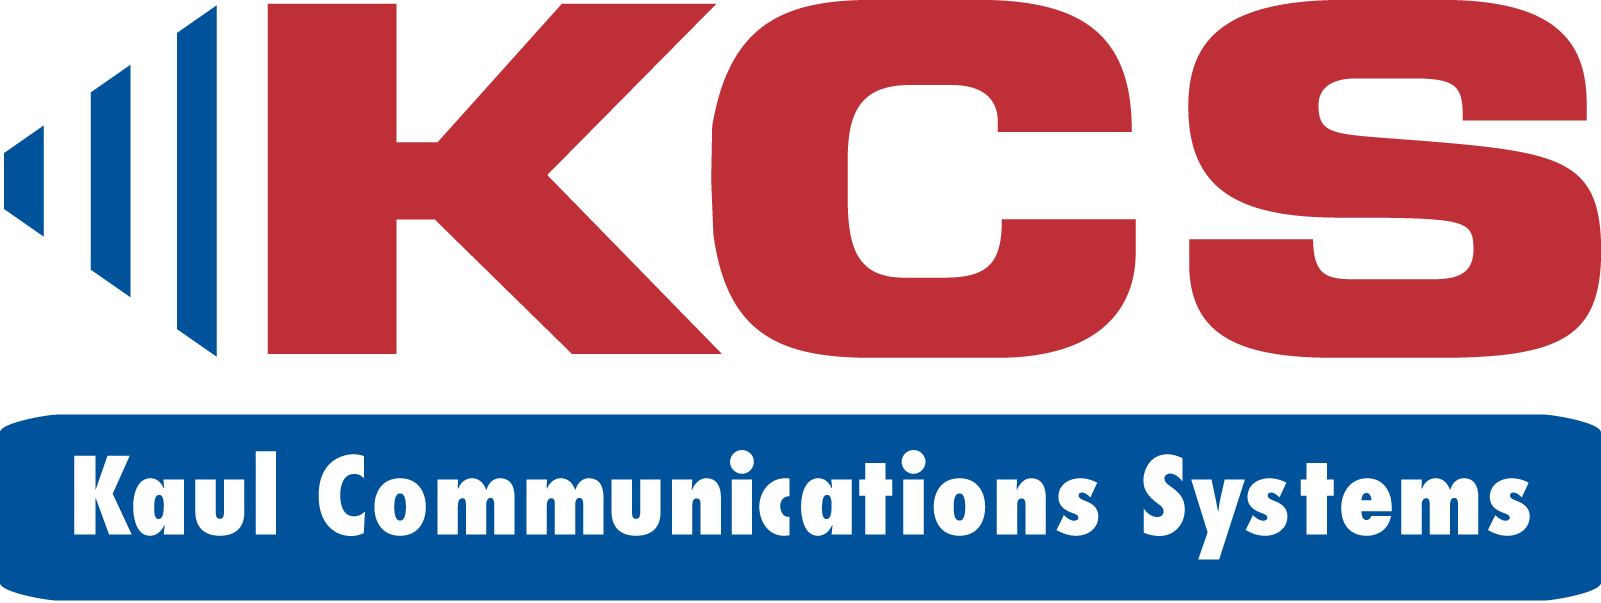 Kaul Communications Systems logo